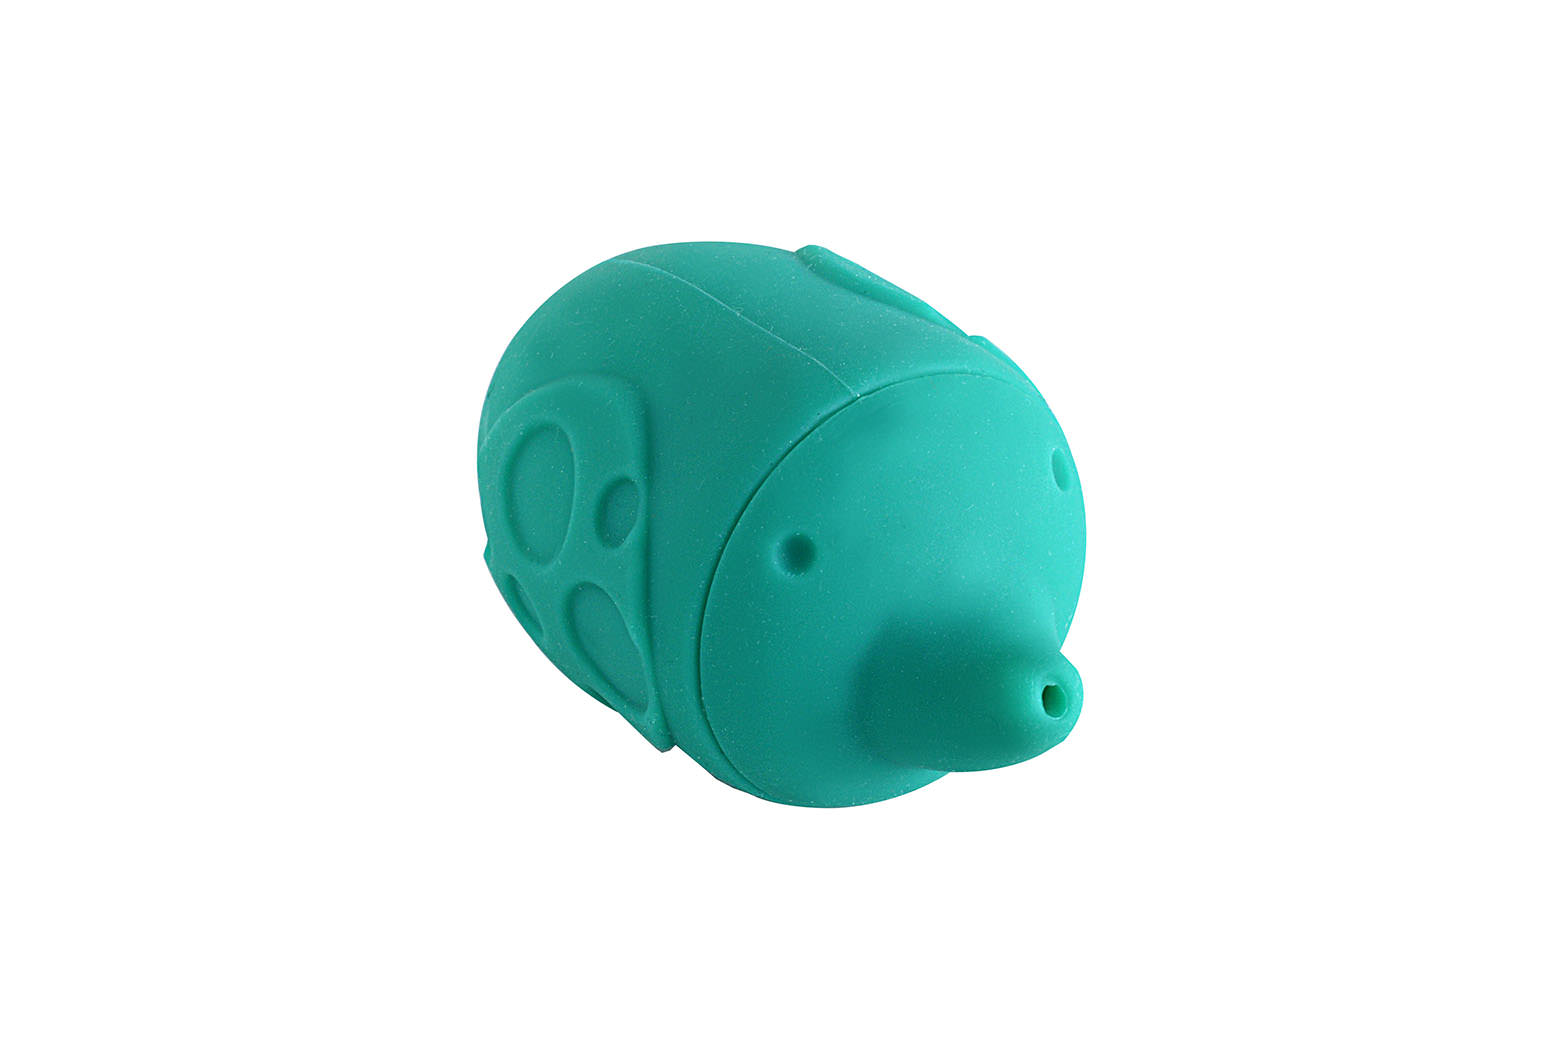 Marcus & Marcus Mold-Free Squirting Bath Toy Ollie the Elephant by Marcus %26 Marcus